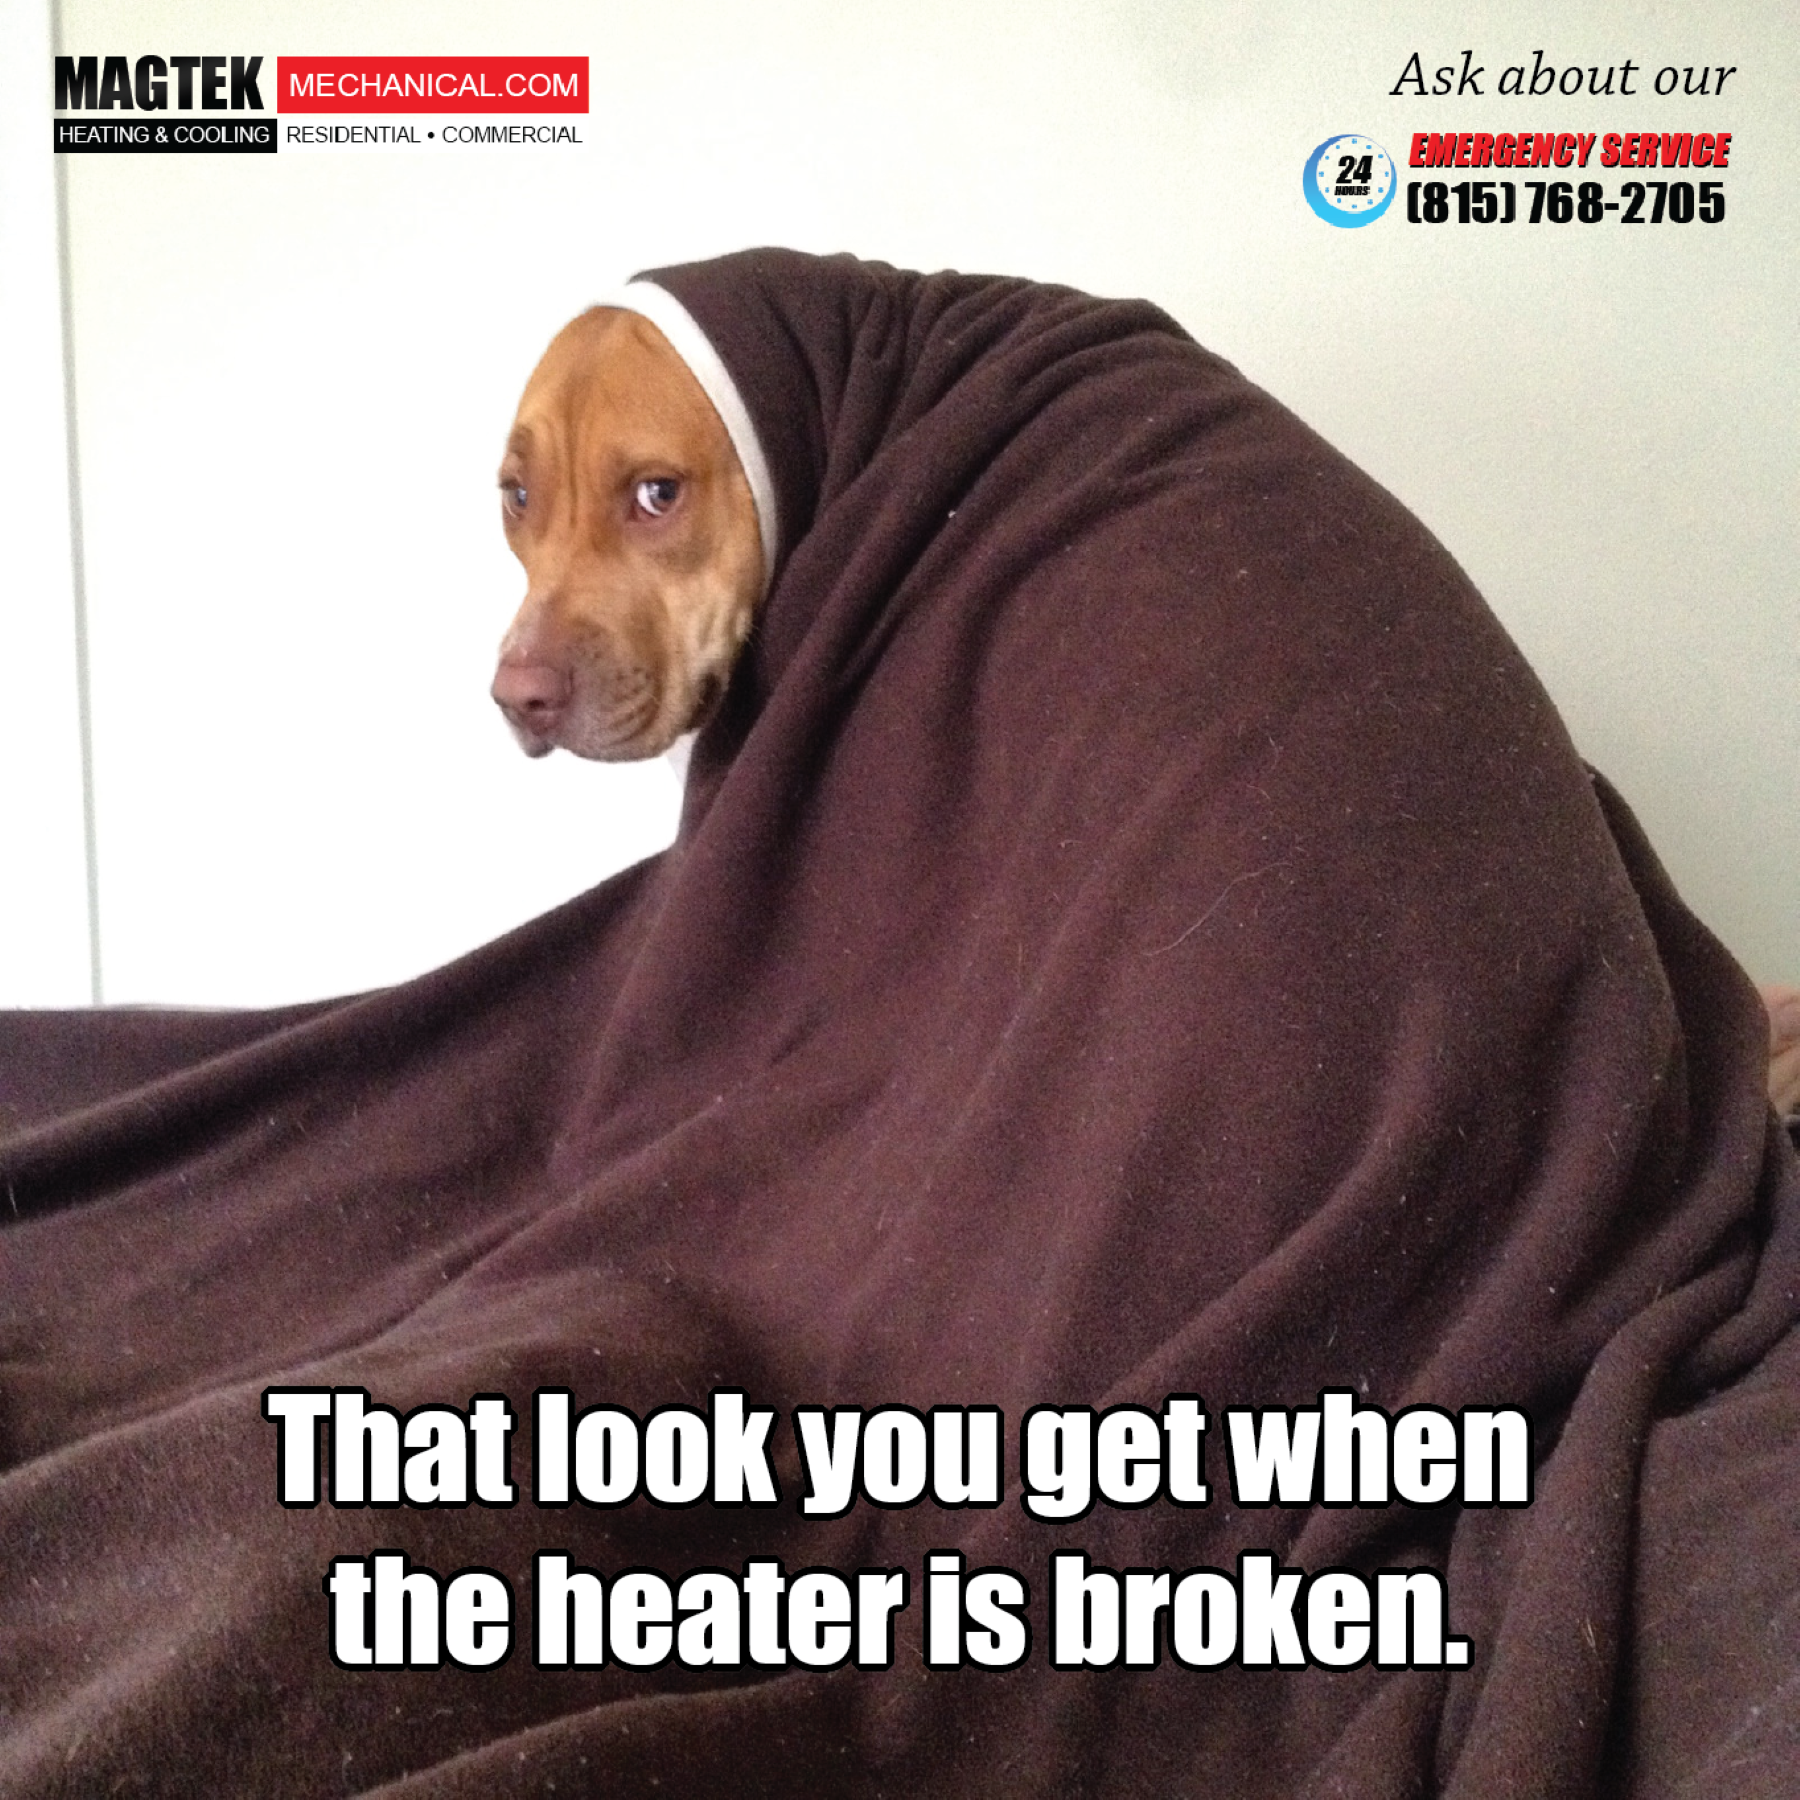 d4eec9ff093c8a65633ee623a171082b that look you get when the heater is broke, ask about our